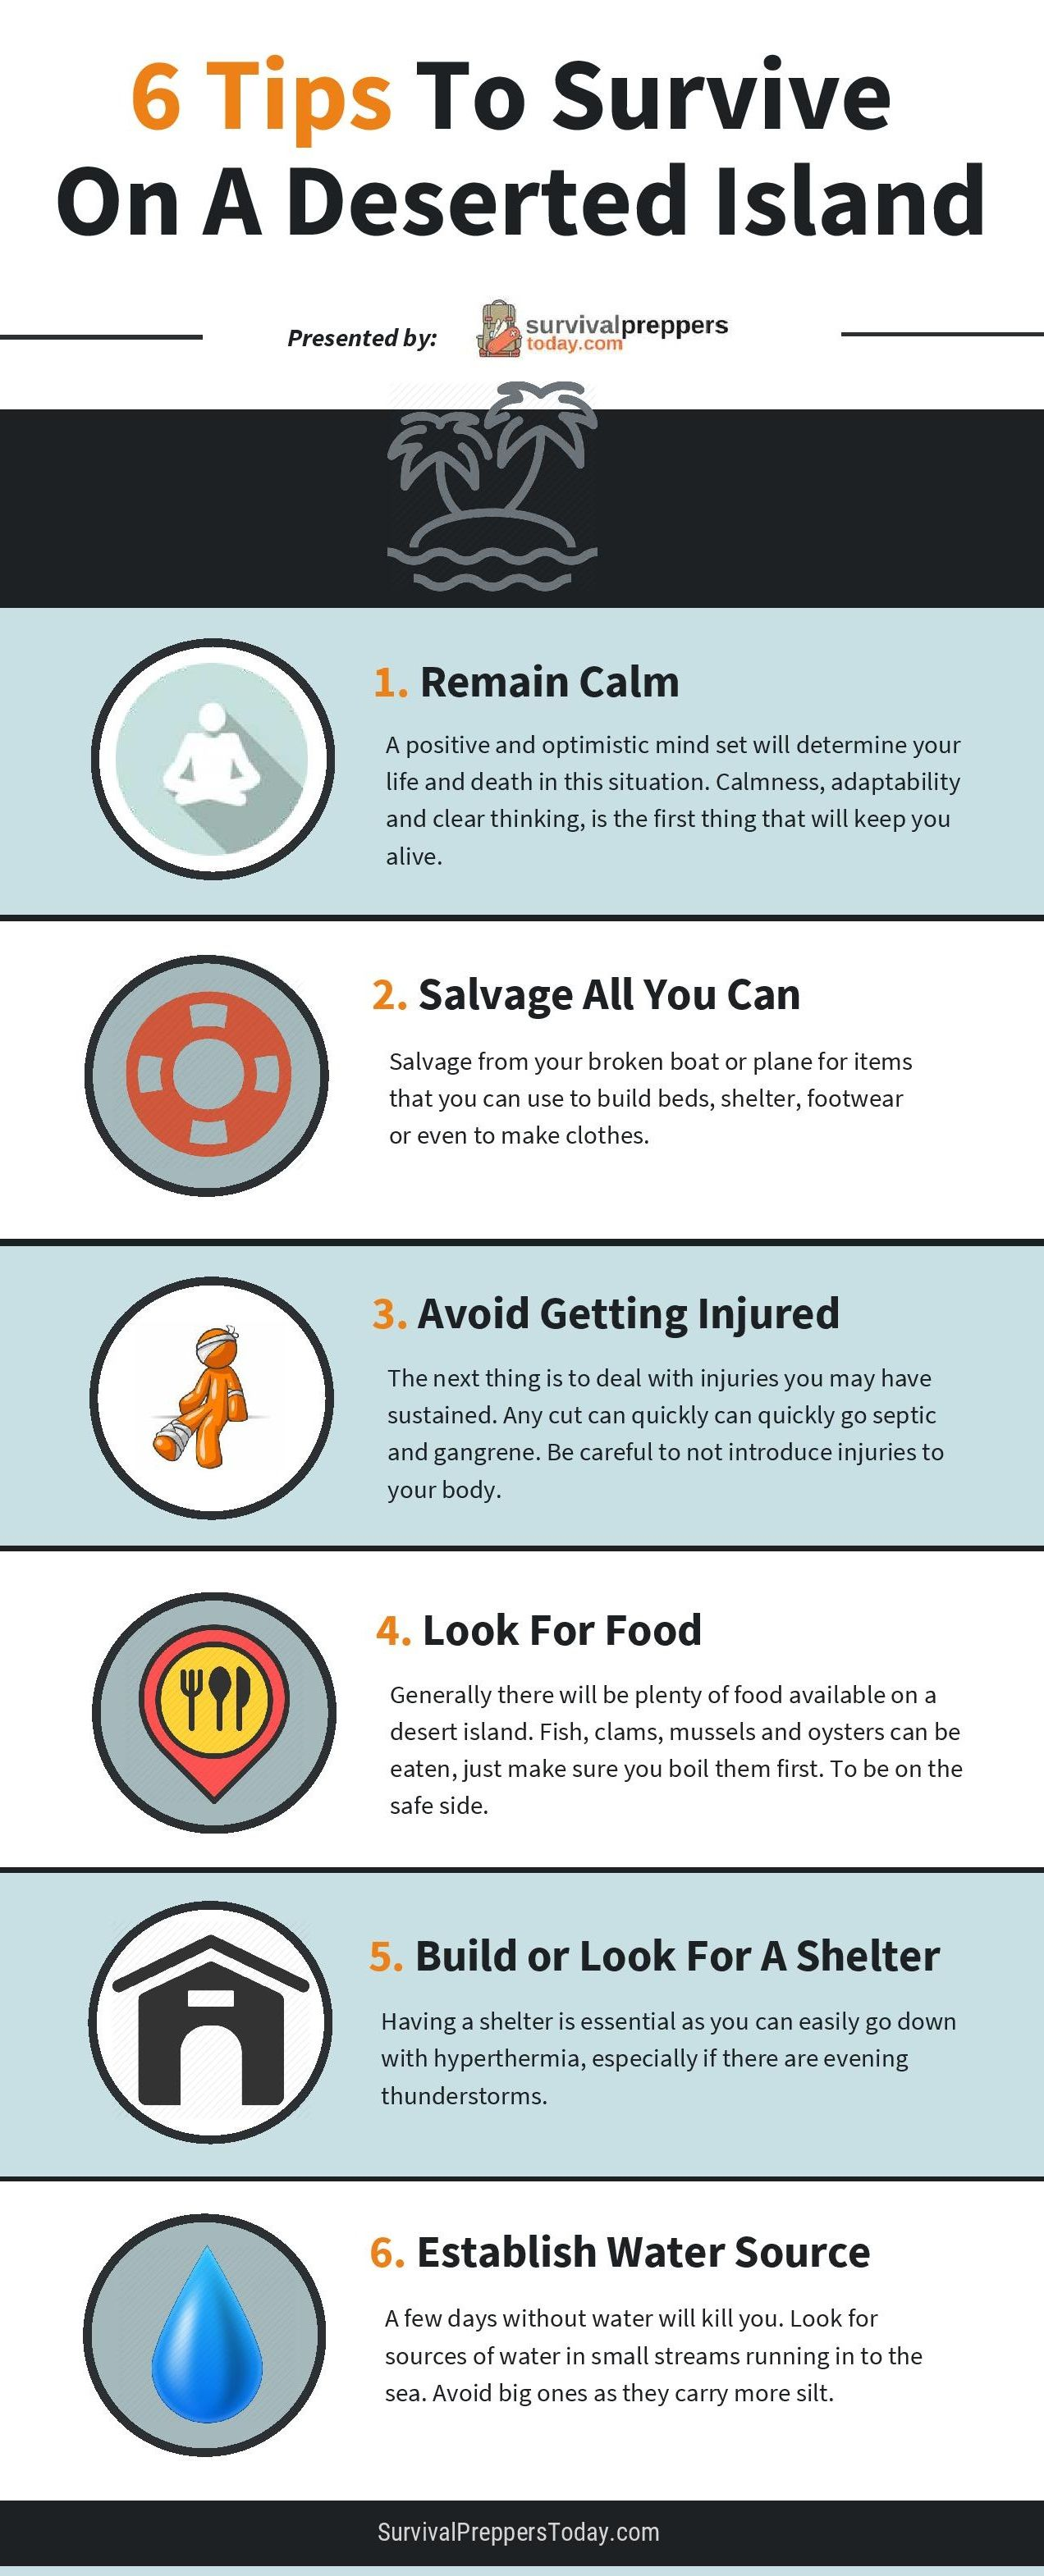 How To Survive On A Deserted Island - Infographic